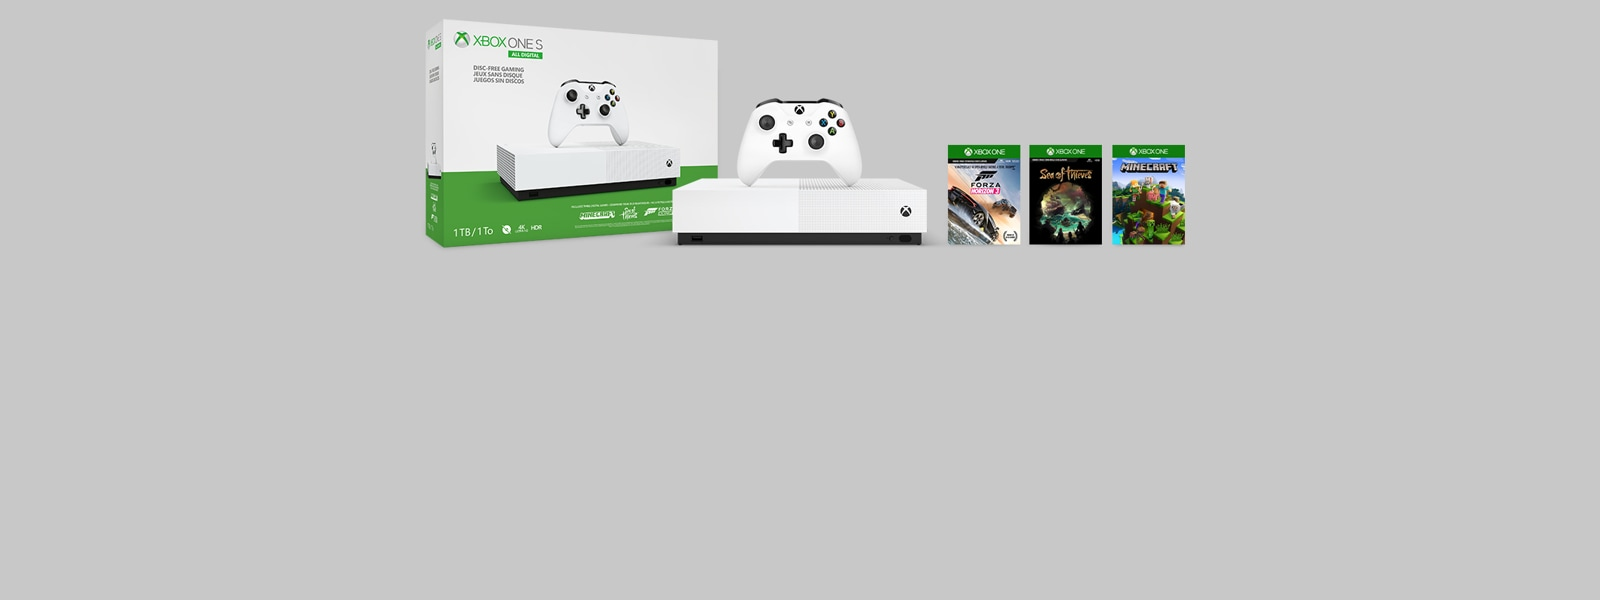 Nuova console Xbox One S All-Digital Edition che mostra i titoli di gioco precaricati: Forza Horizon 3, Sea of Thieves e Minecraft